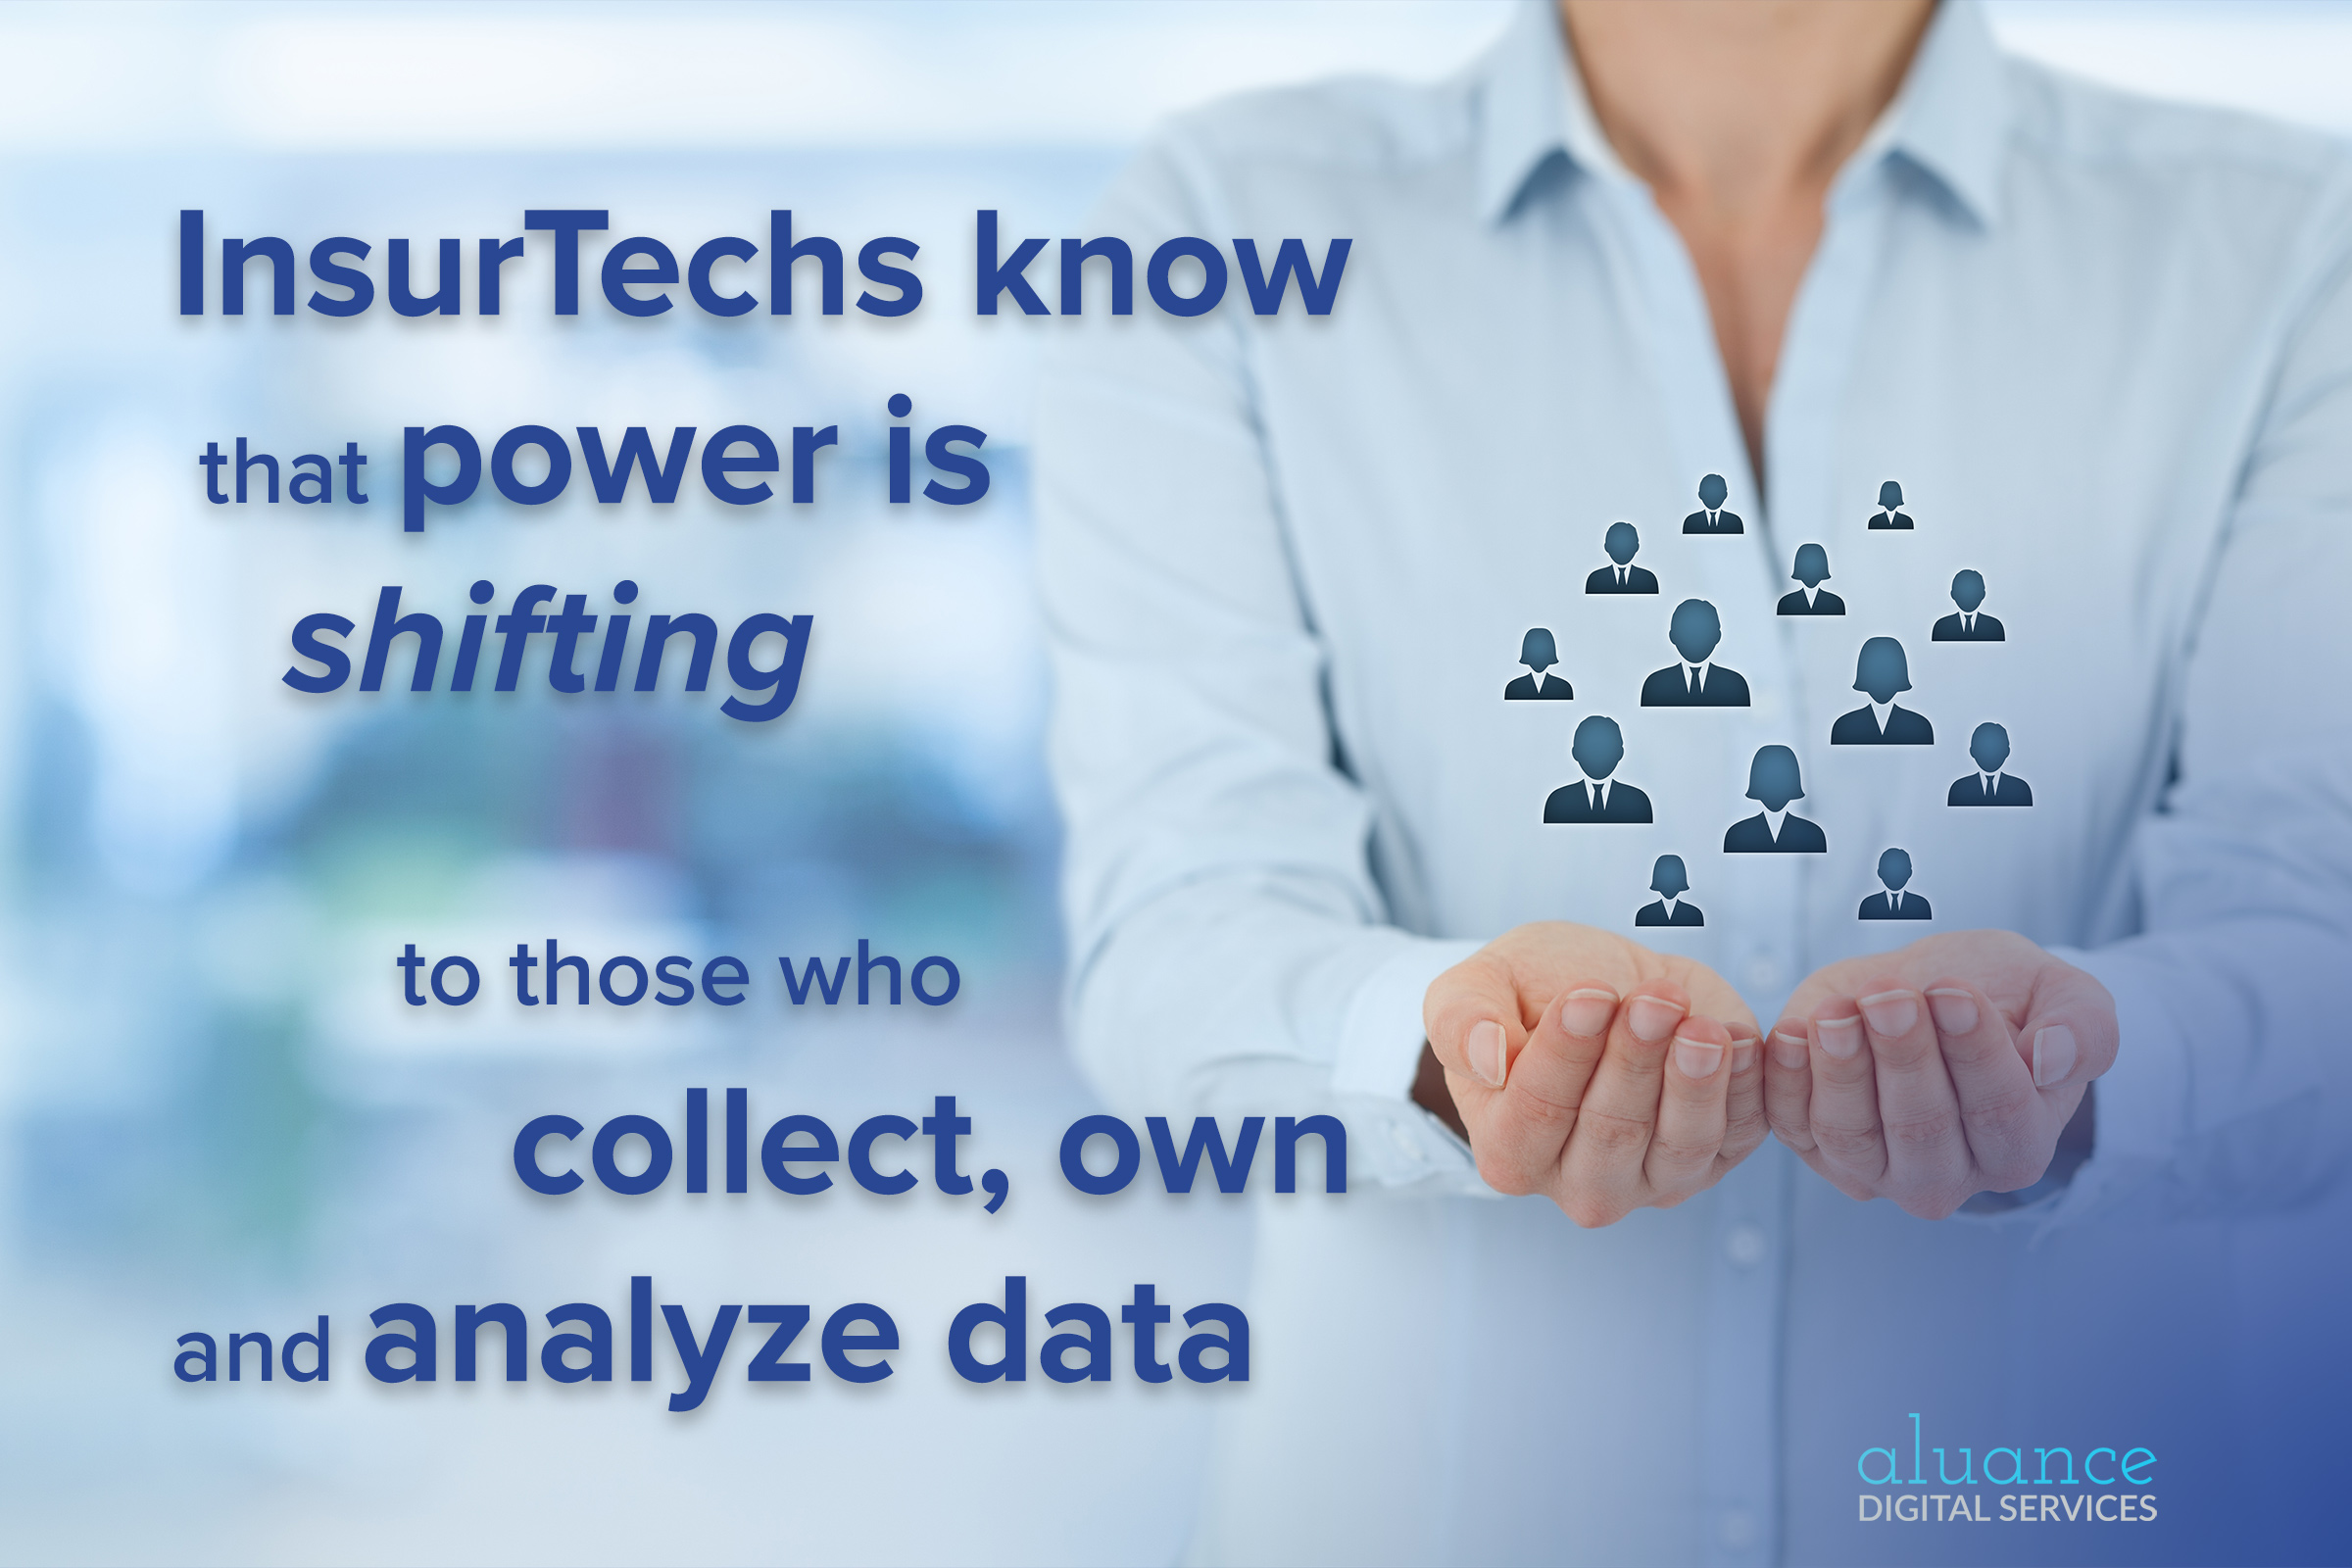 InsurTechs know that power is shifting to those who collect, own and analyze data. | Aluance Digital